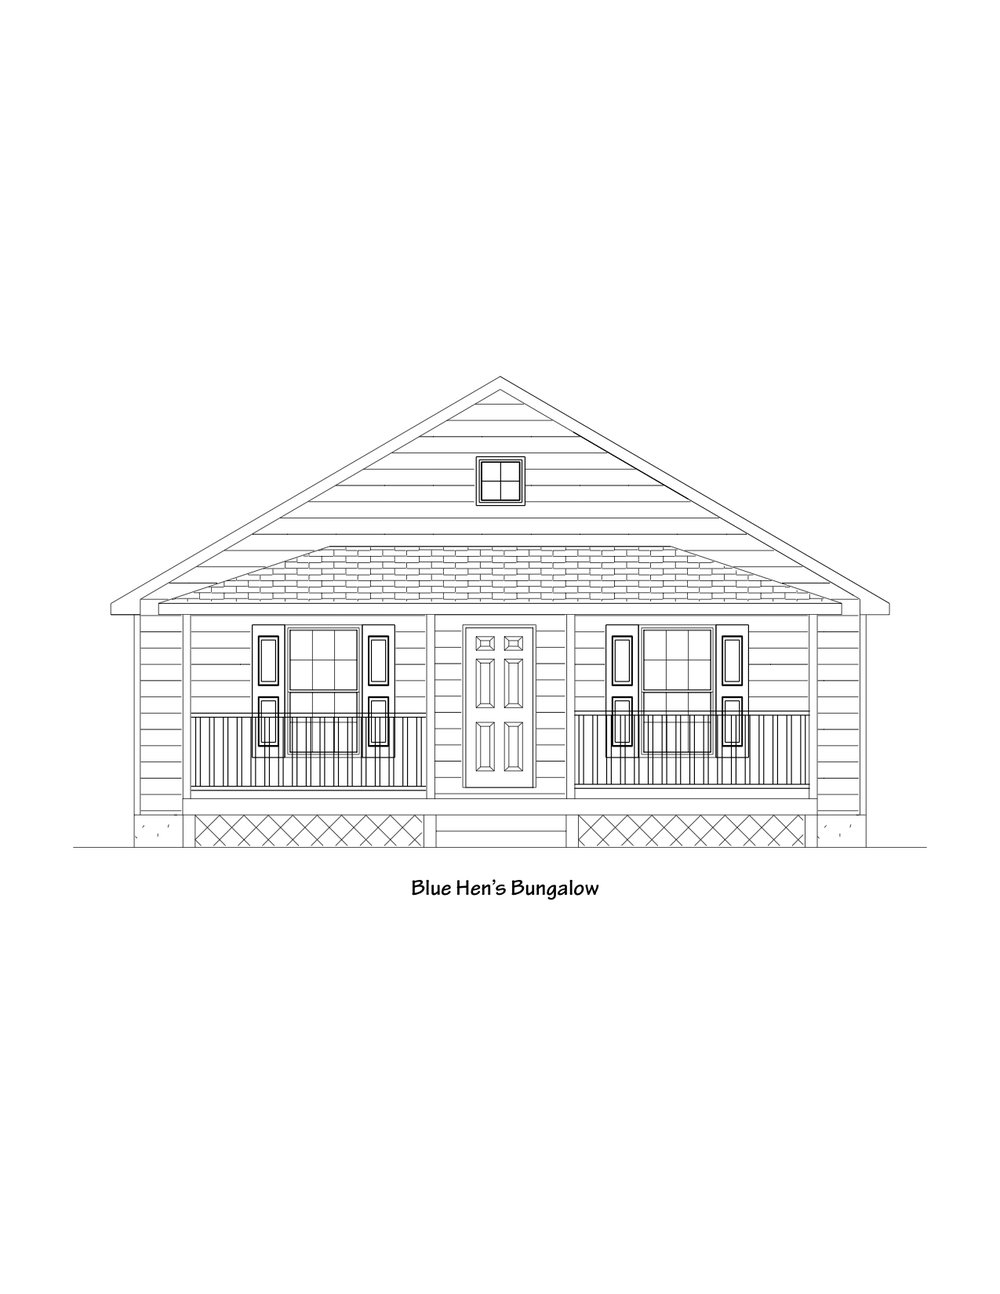 BHC_bungalow_Front_Elevation.jpg